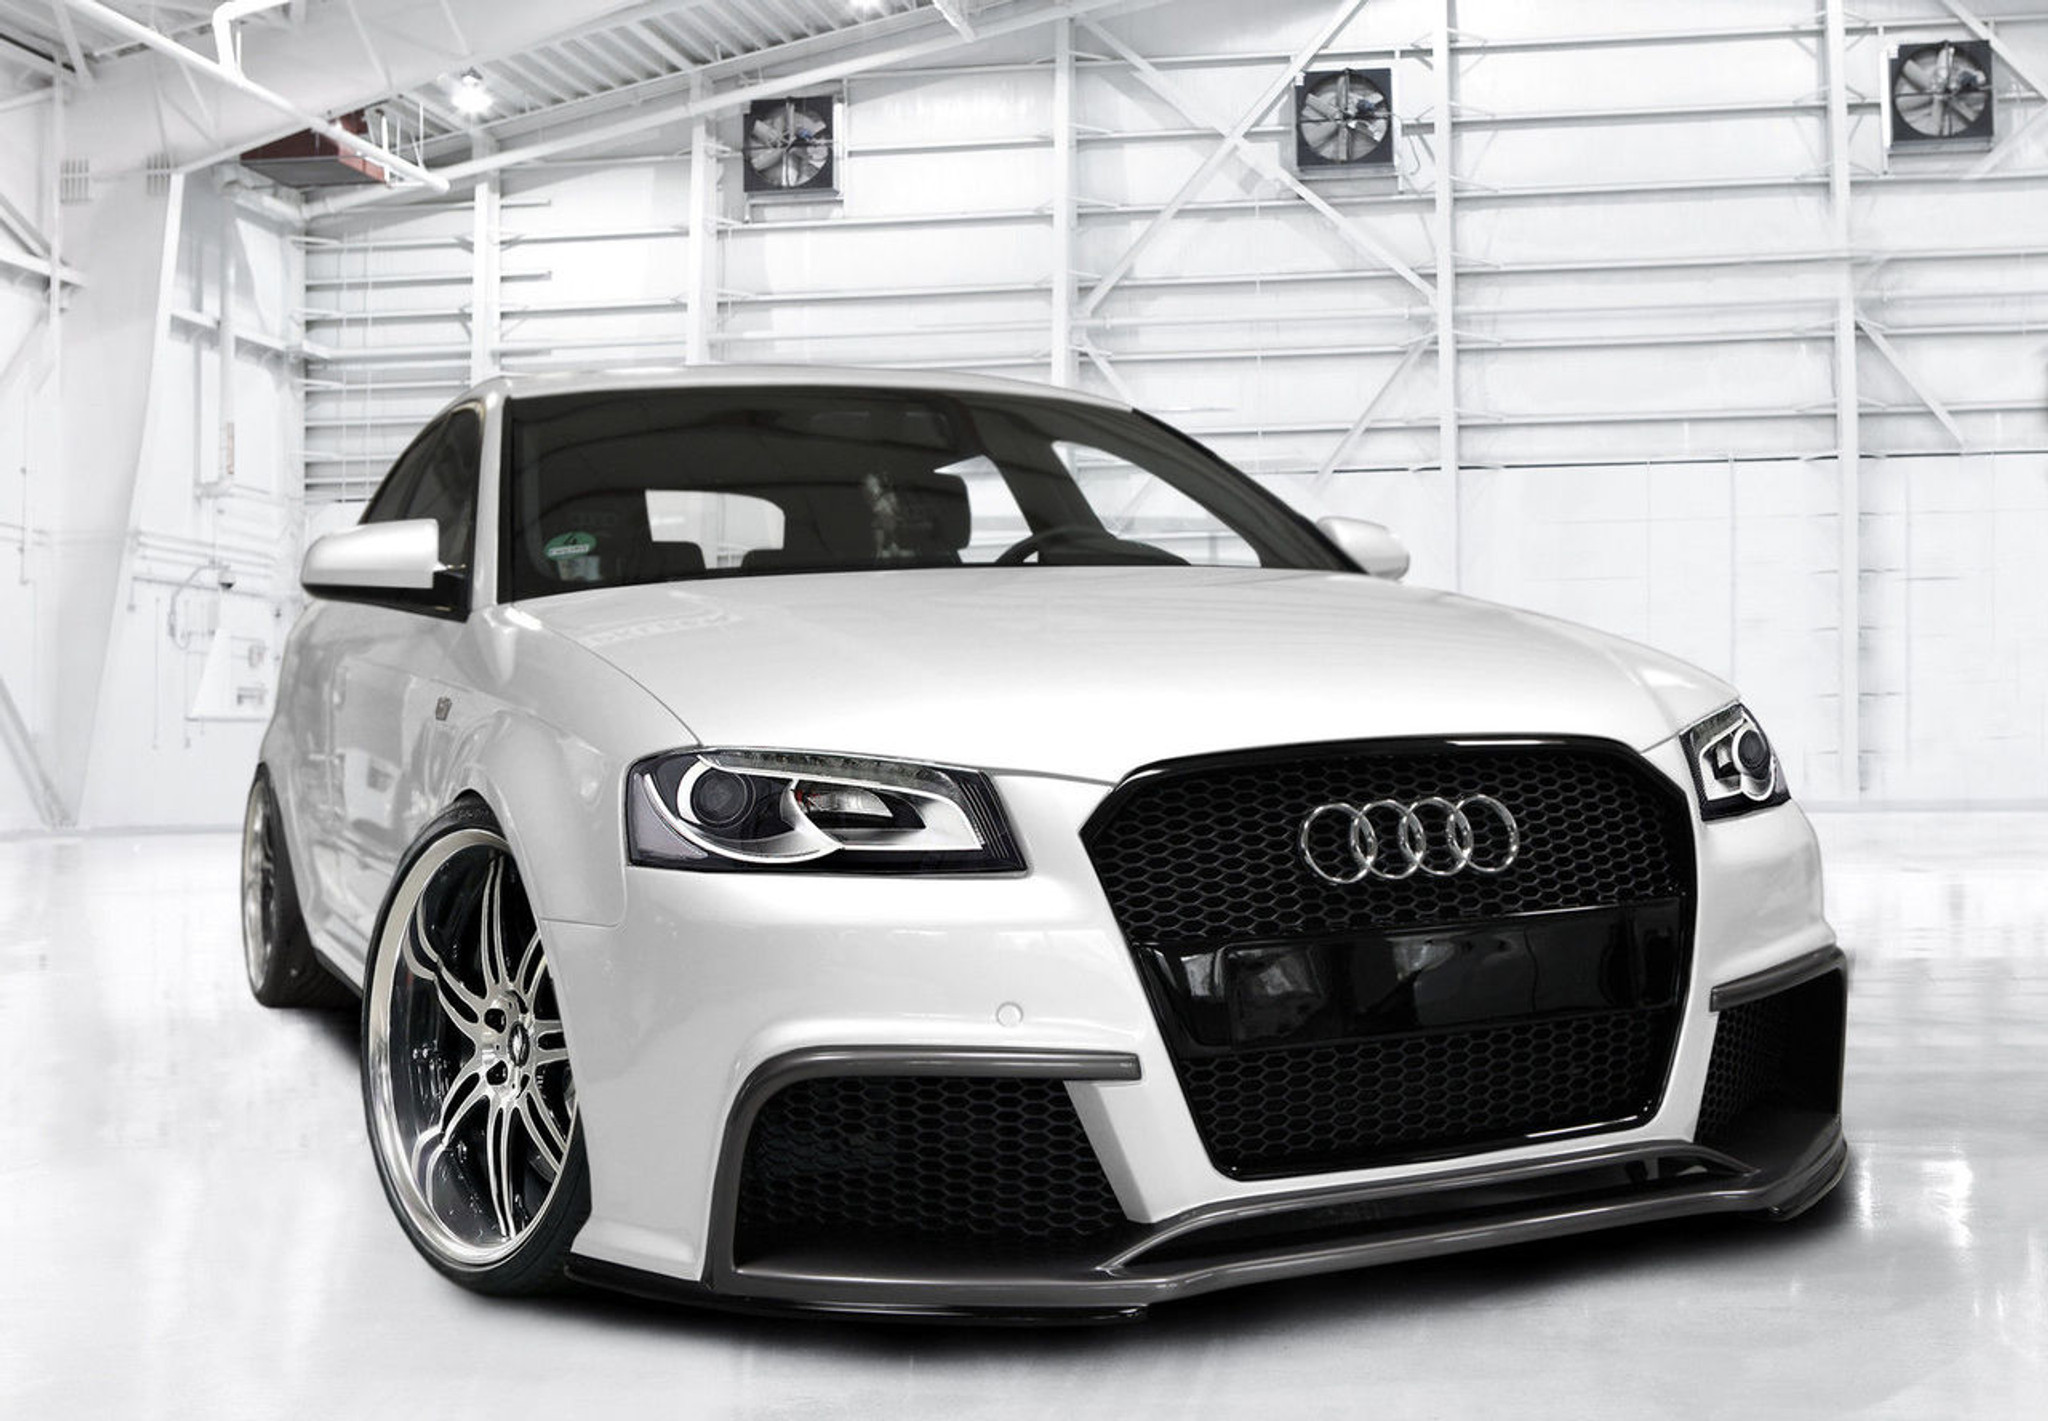 Audi A3 8p Rs Bodykit Meduza Design Ltd